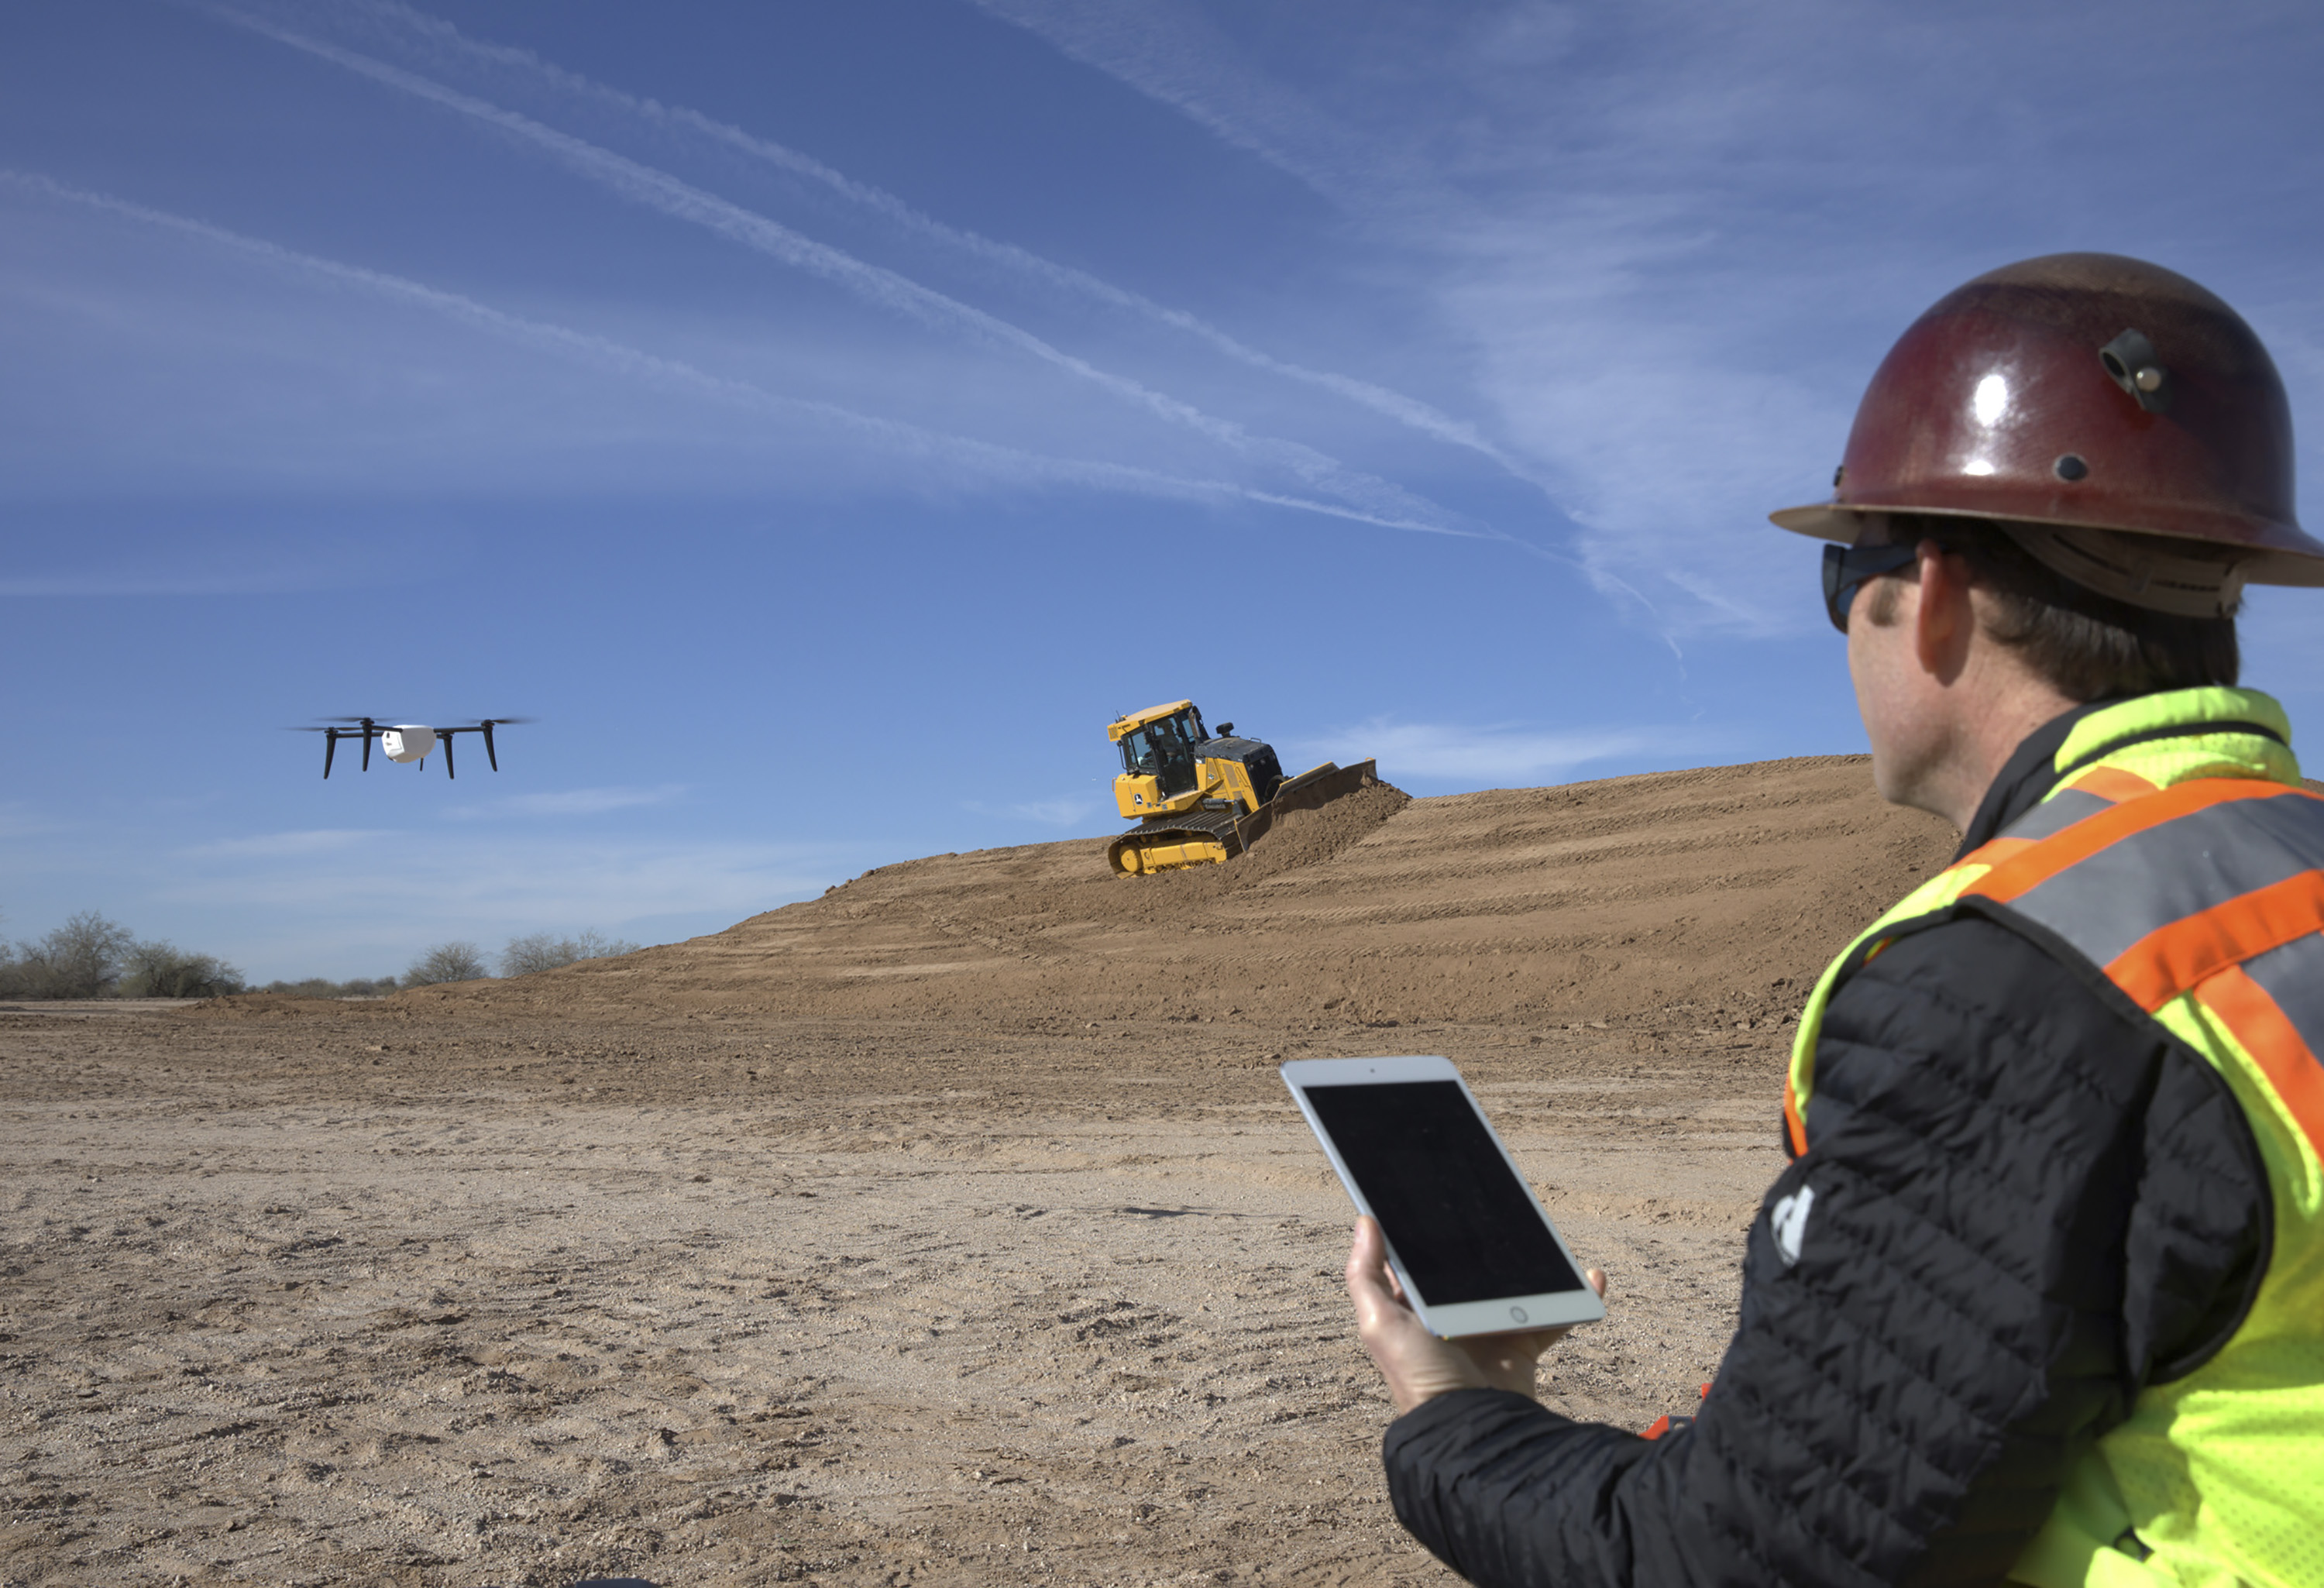 John Deere and Kespry Enter Strategic Alliance to Simplify Drone Integration on Construction Job Sites